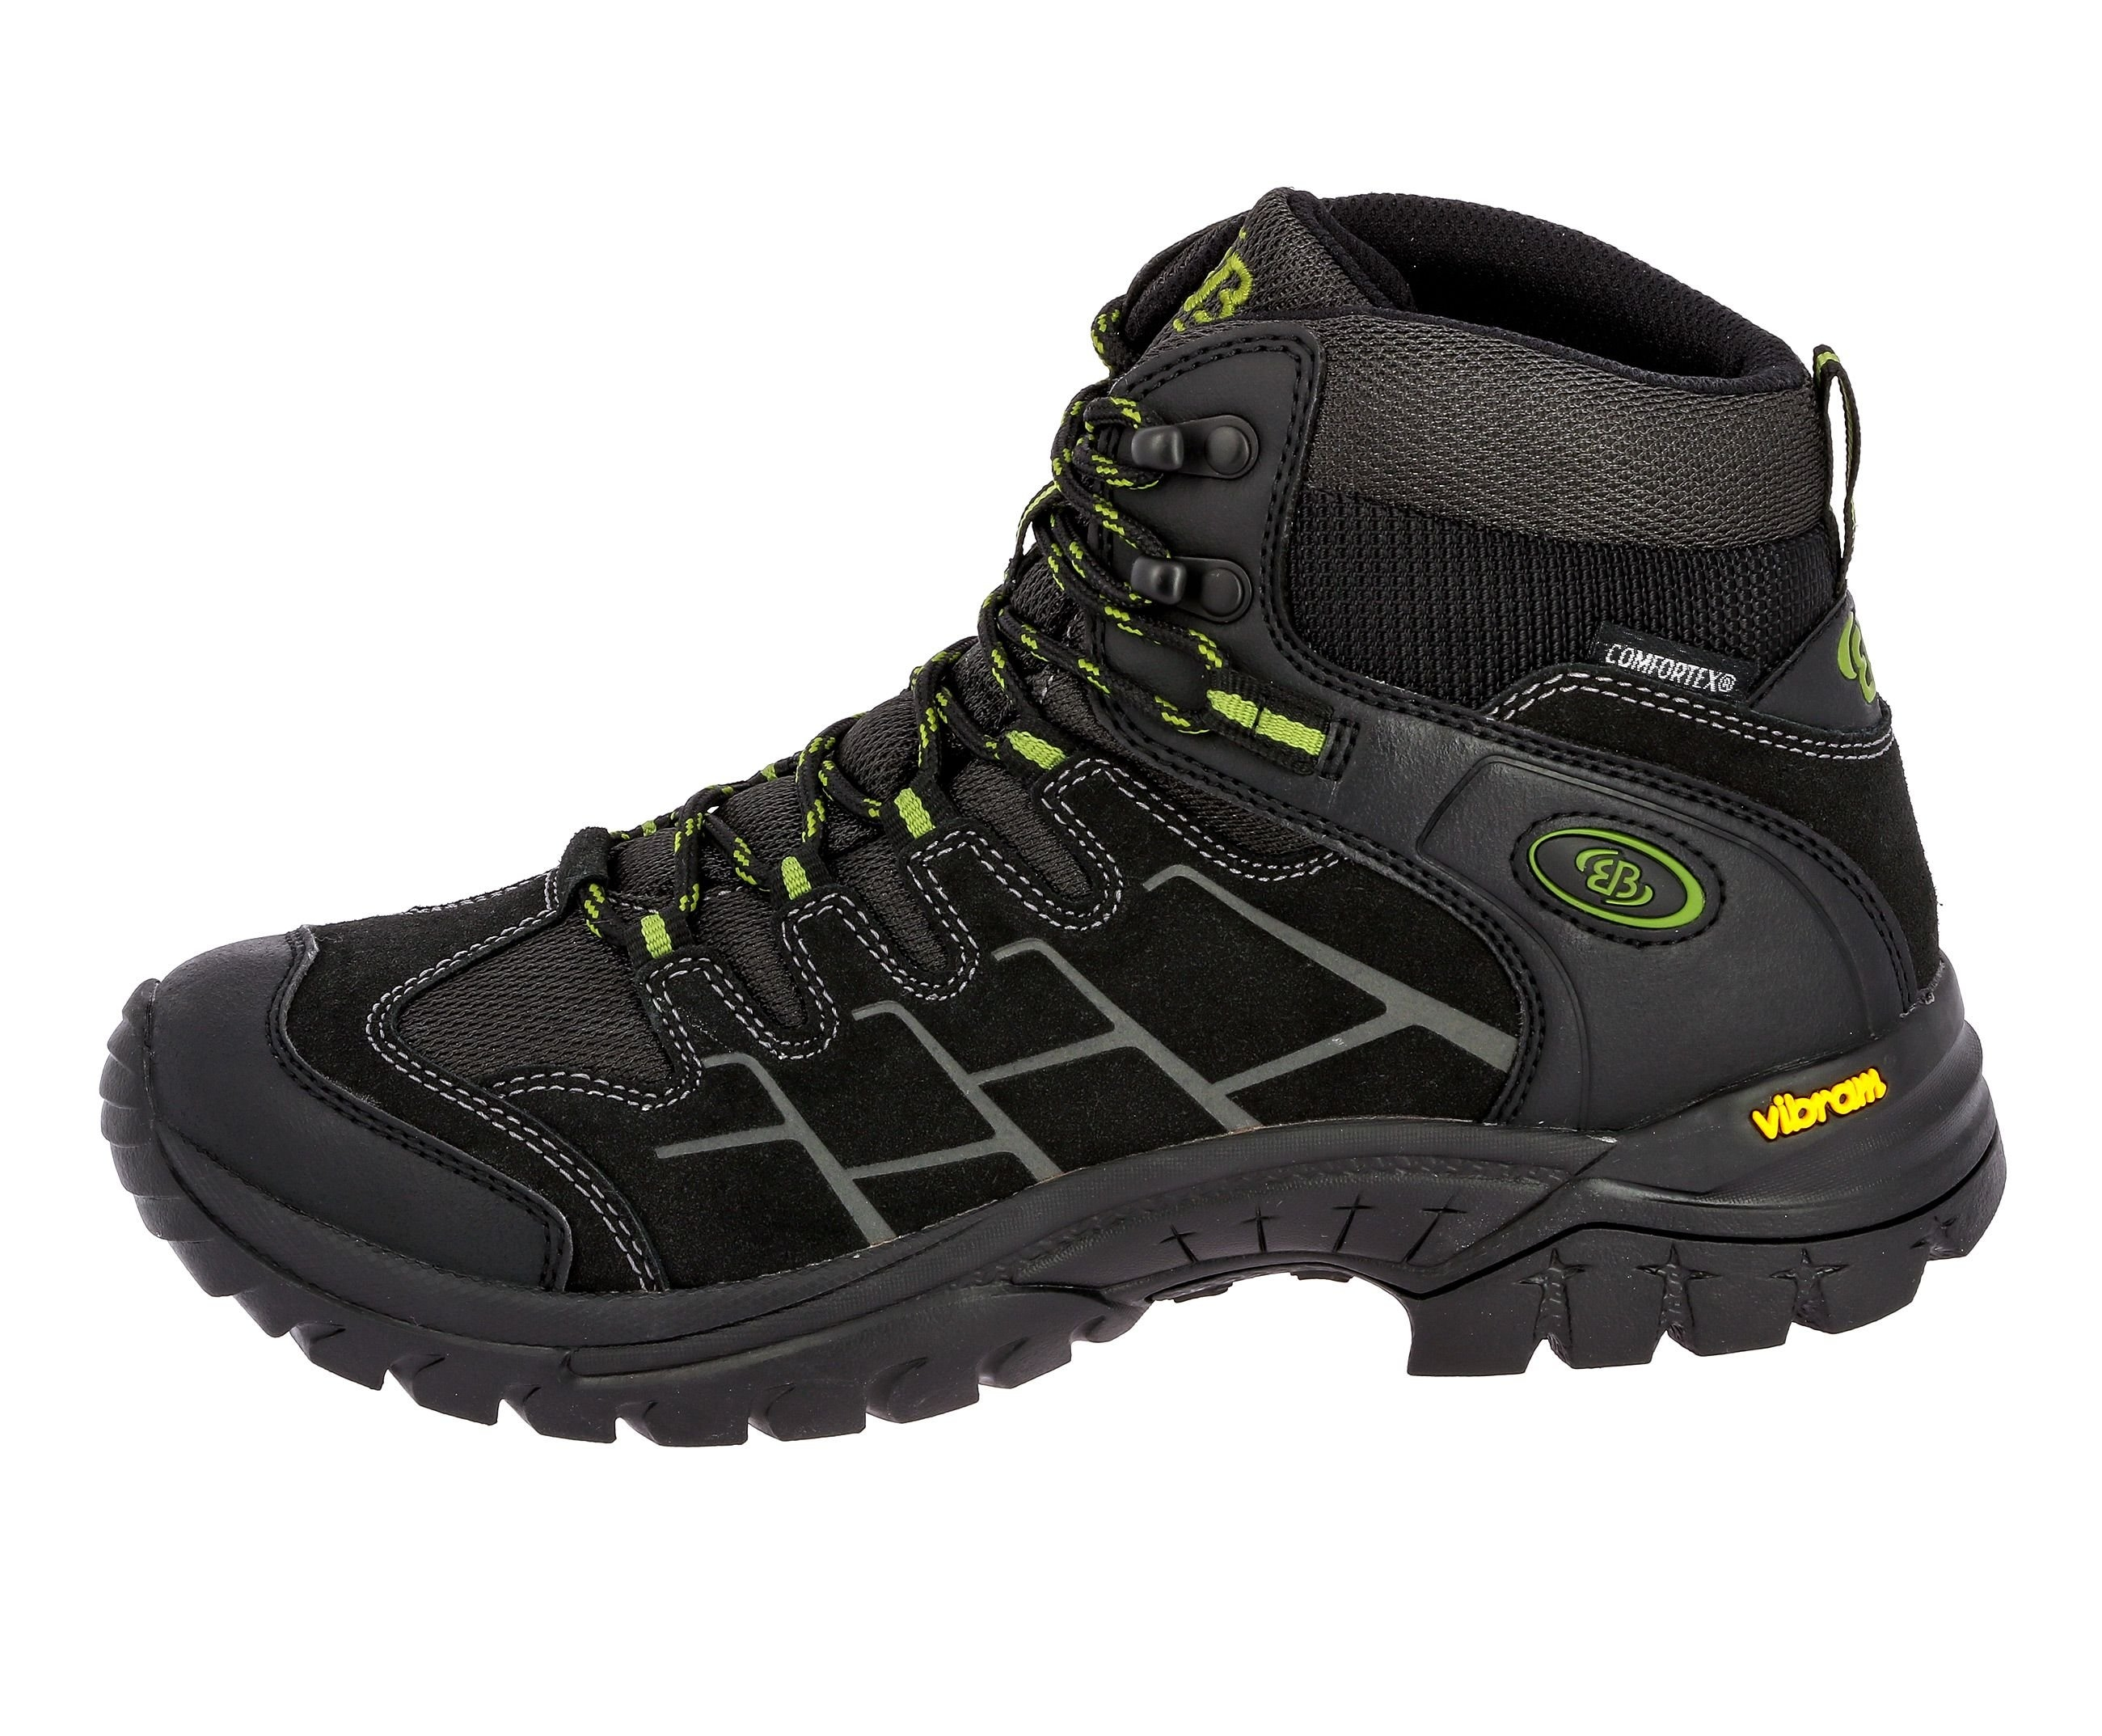 Brütting Functionele outdoor boots »Canada high« - verschillende betaalmethodes